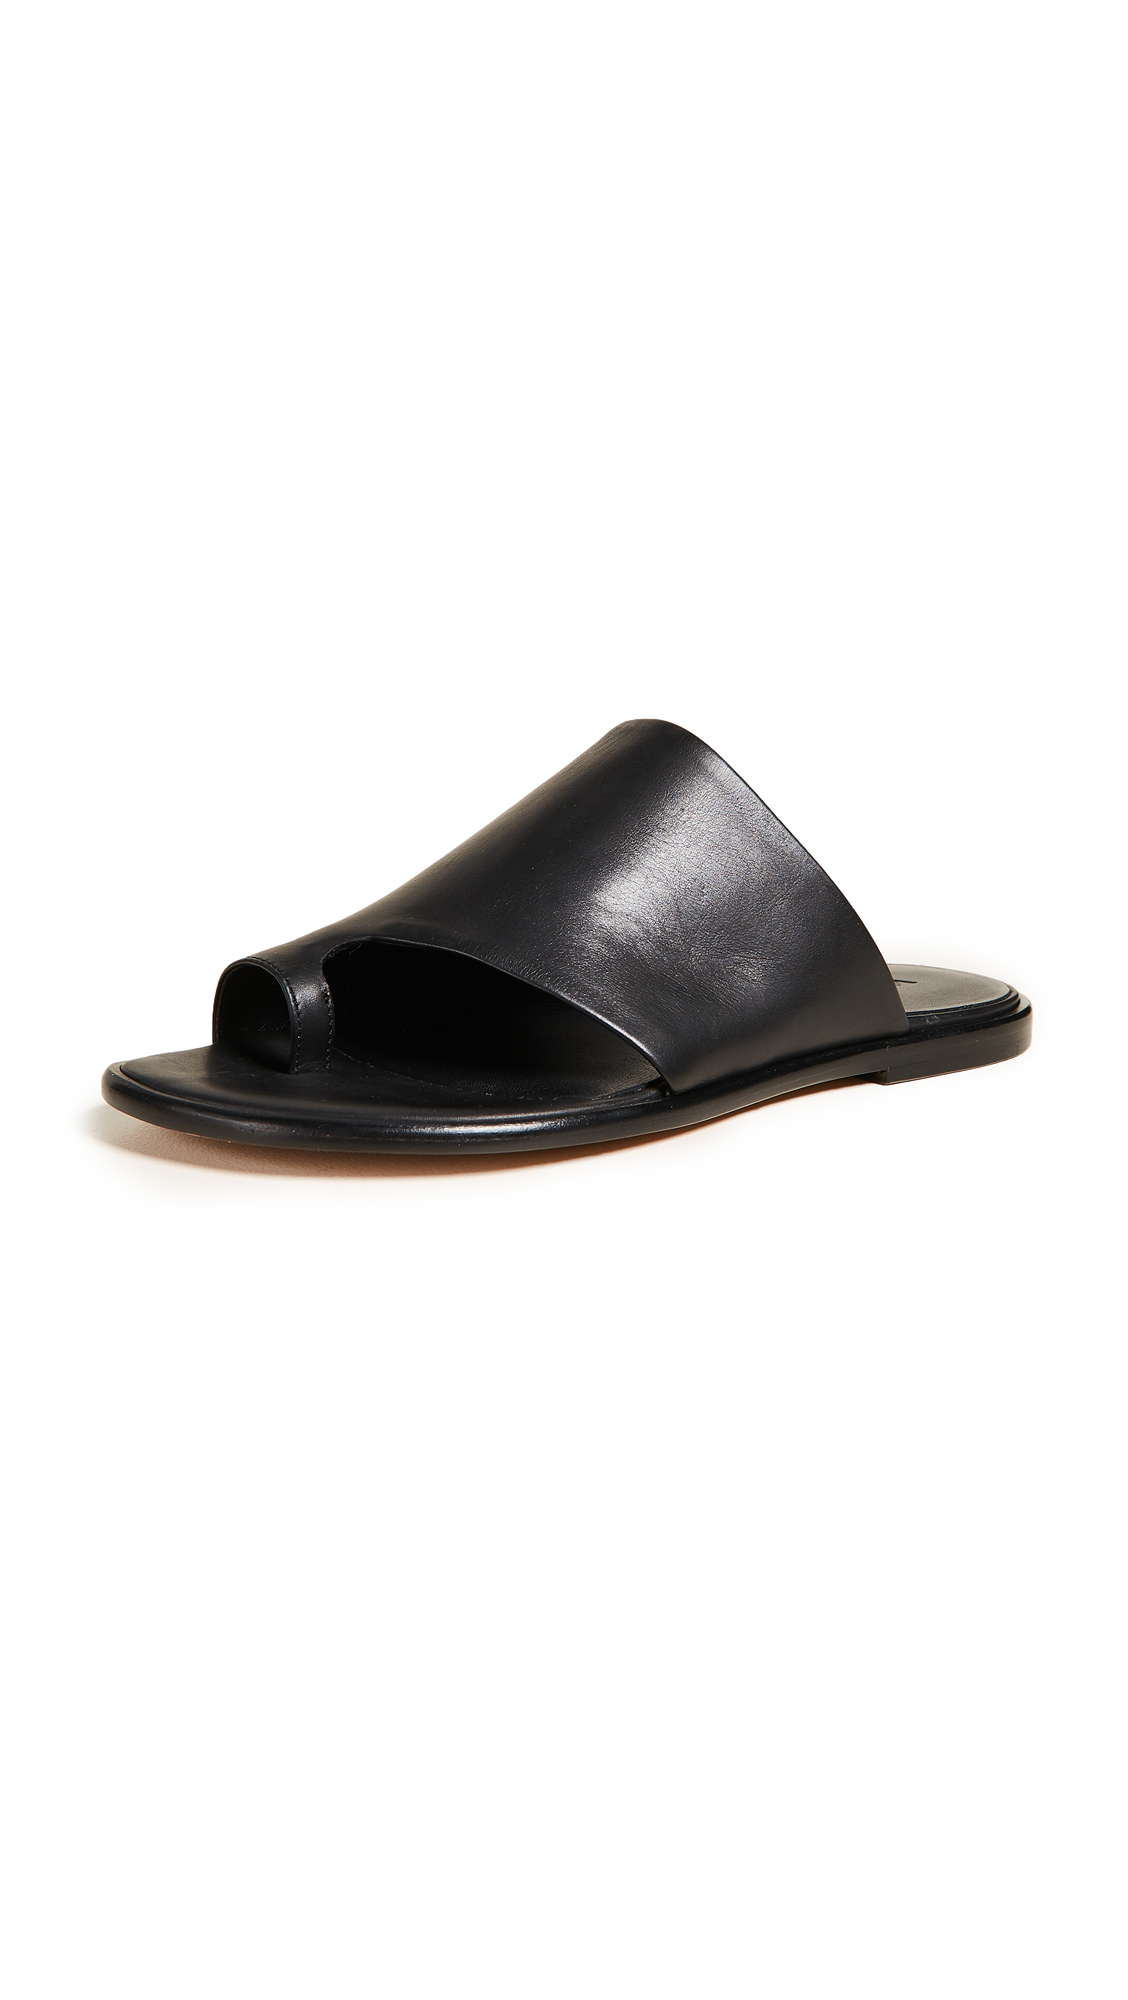 Vince Edris Sandals - Black